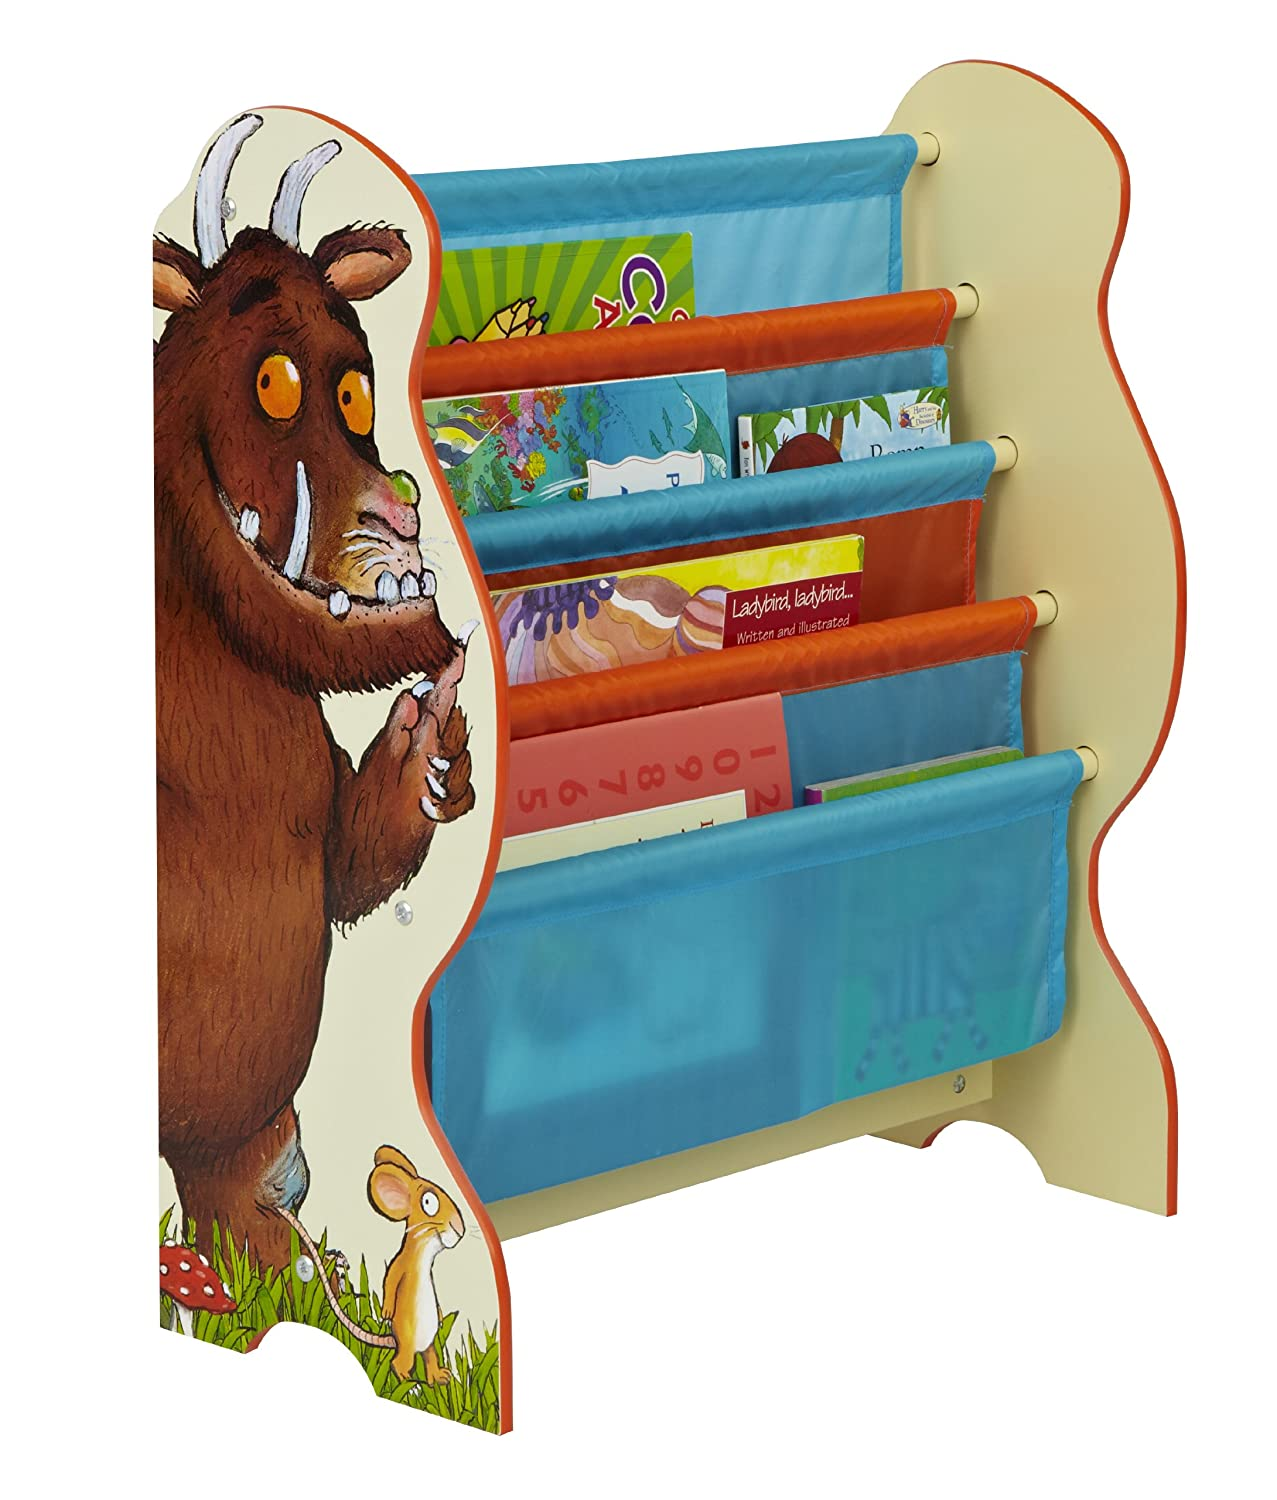 in bookshelf rogue with bookcase and bins espresso engineer kids boo storage toy bin